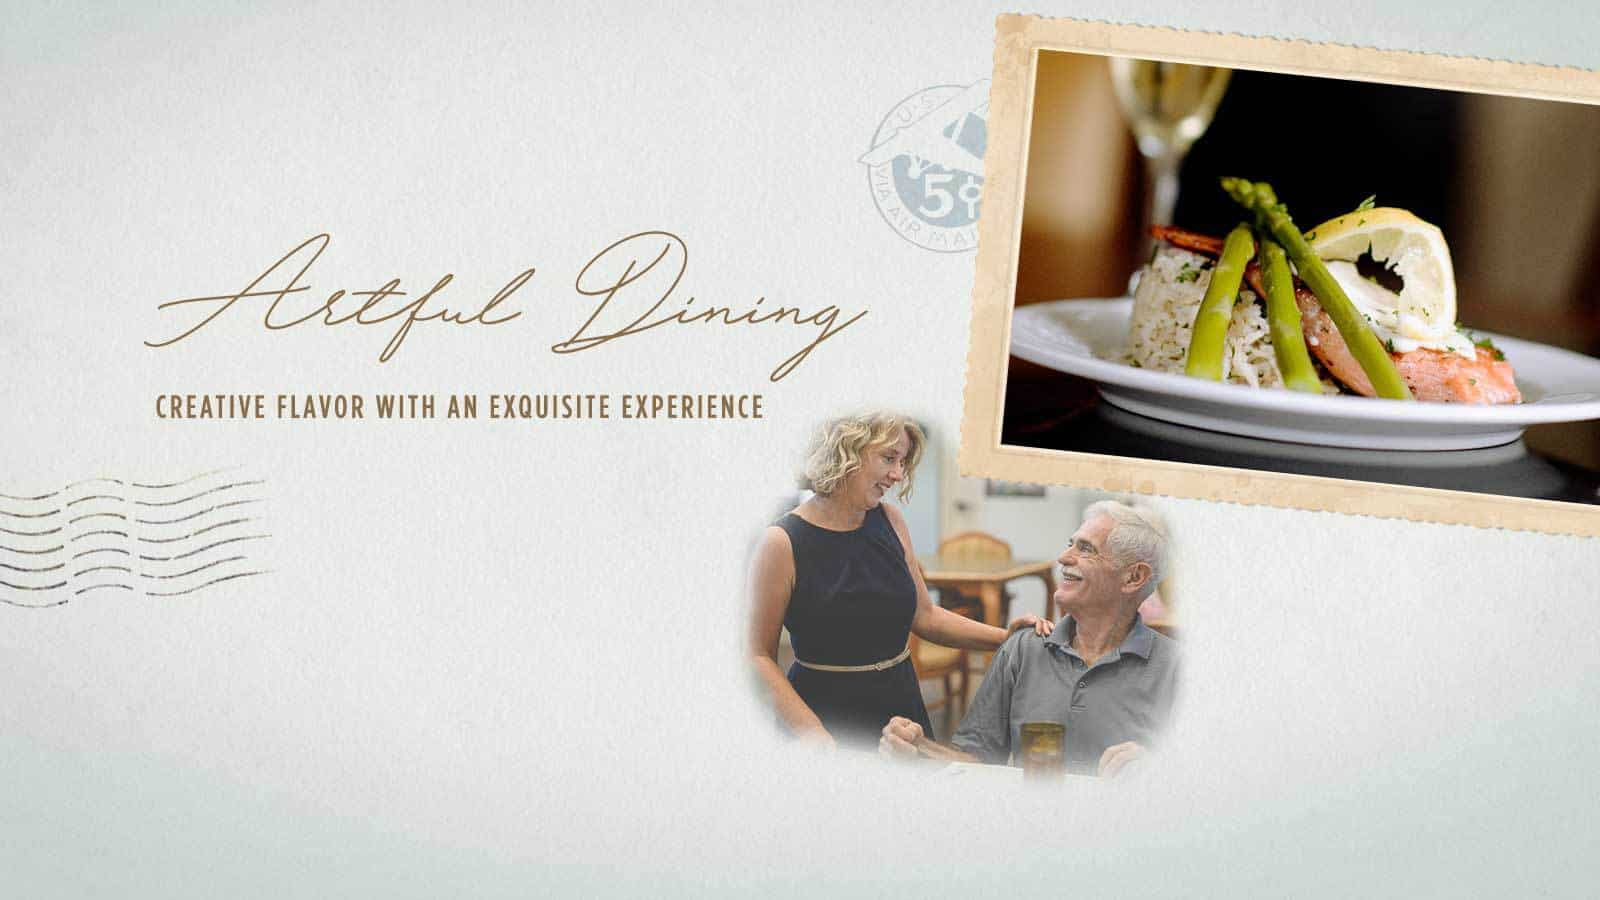 Artful Dining: Create Flavor with an Exquisite Experience